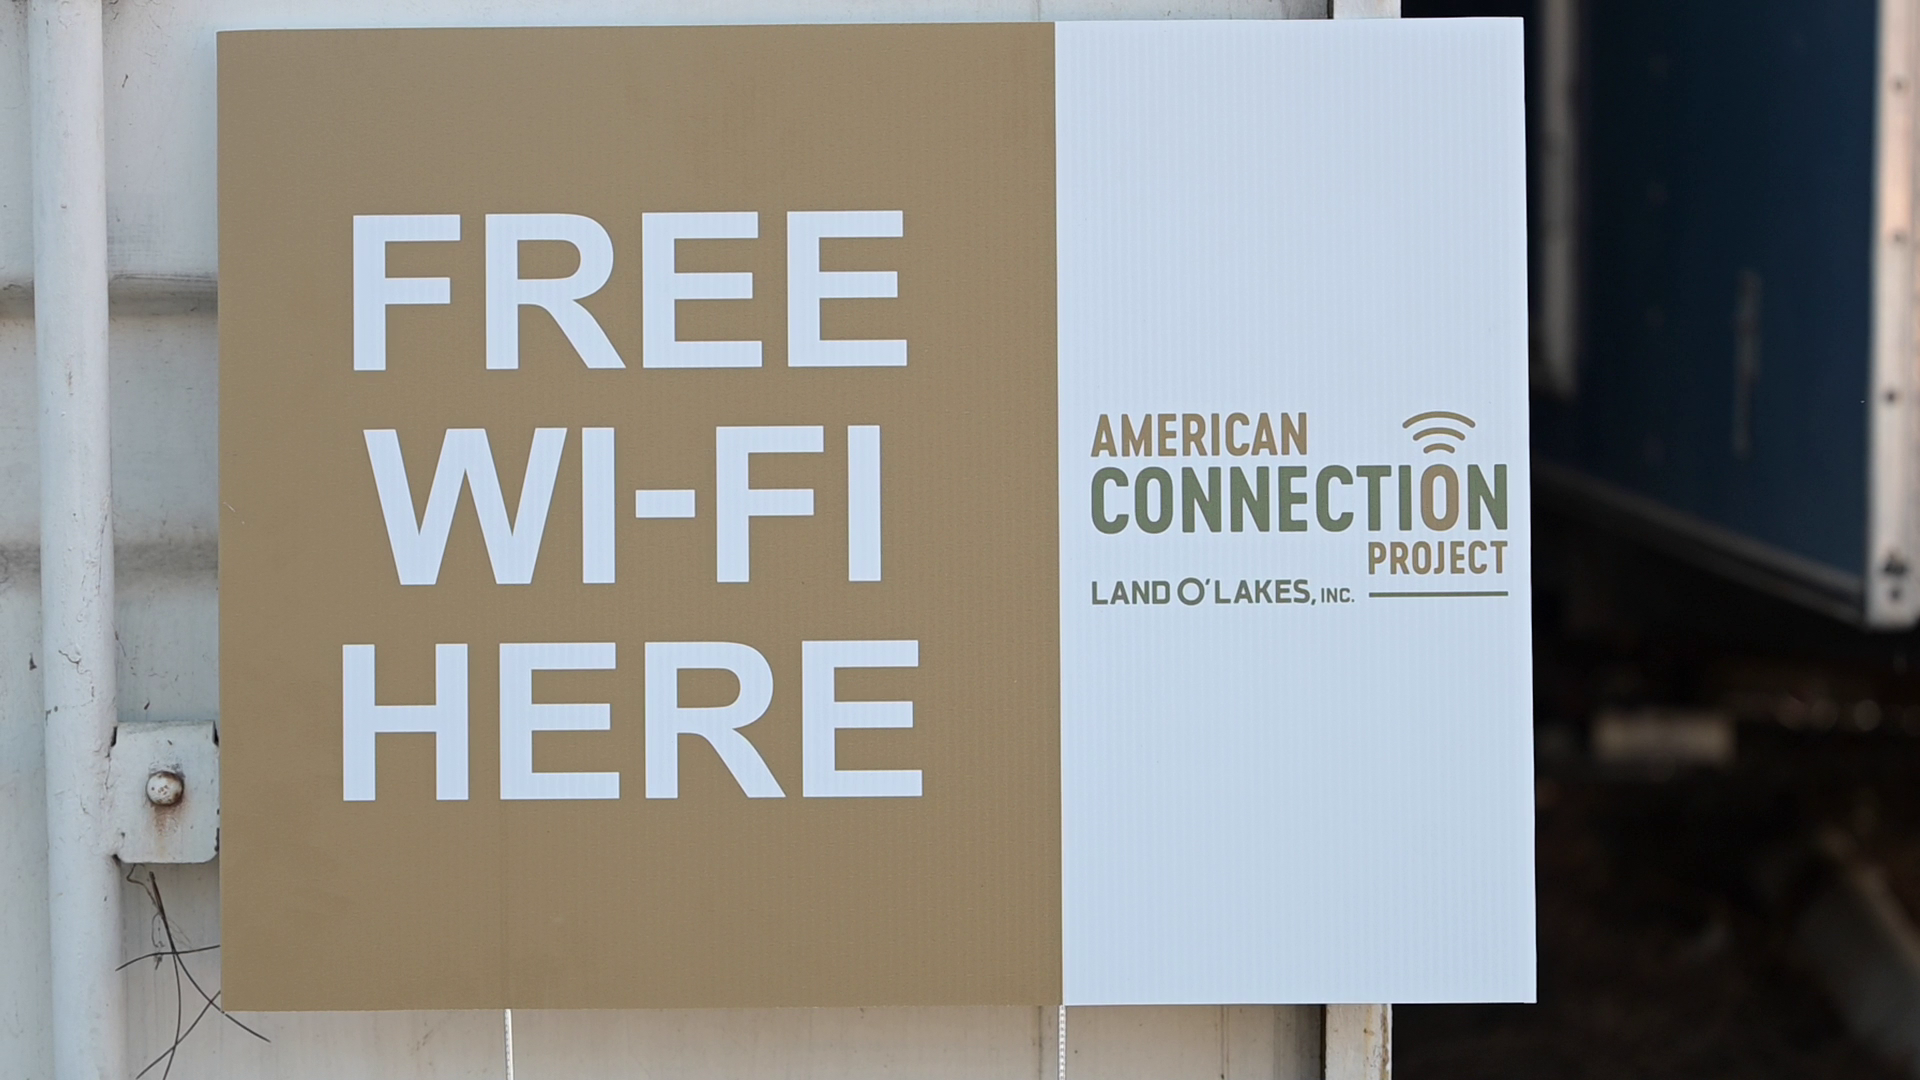 Land O'Lakes switches on free Wi-Fi for rural areas